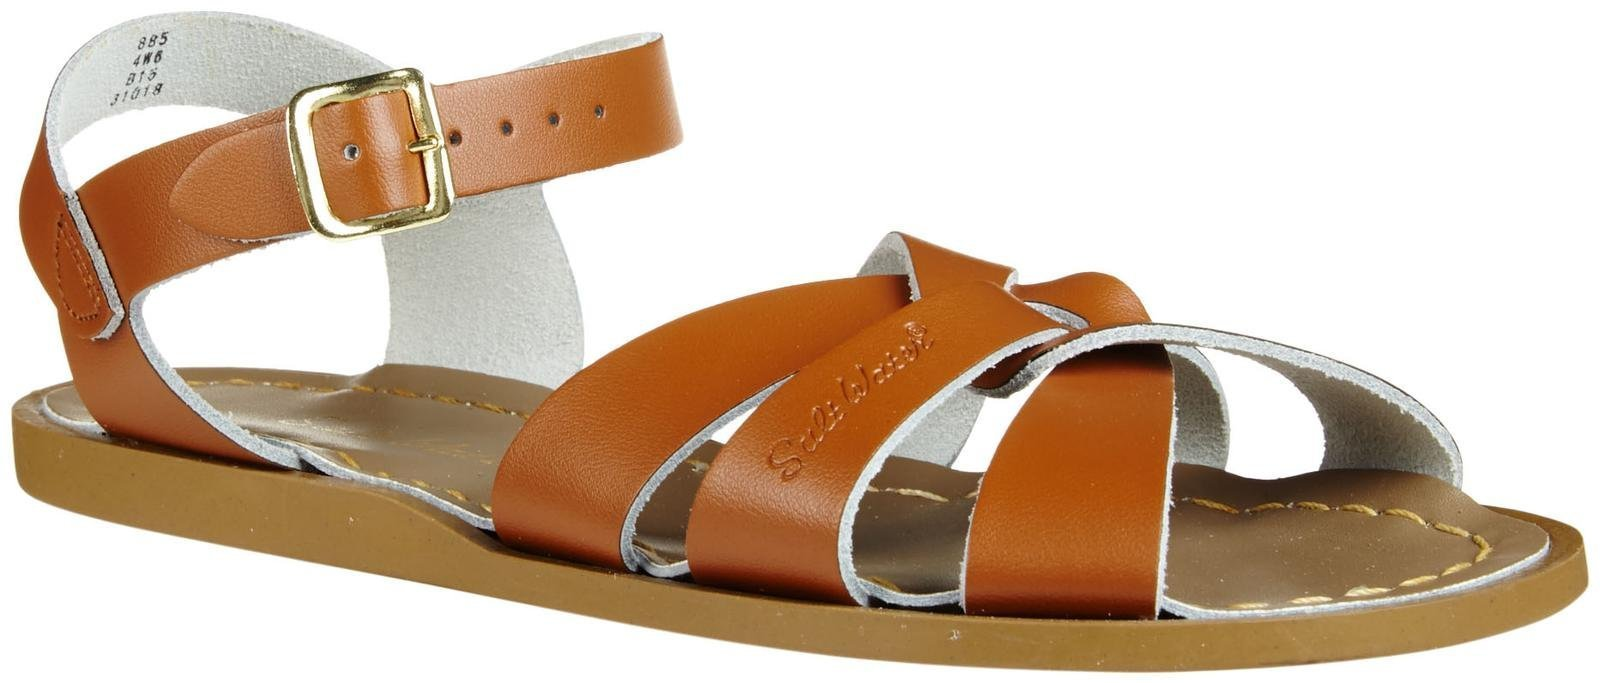 Salt Water Sandals by Hoy Shoe Original Sandal (Toddler/Little Kid/Big Kid/Women's), Tan, 7 M US Big Kid